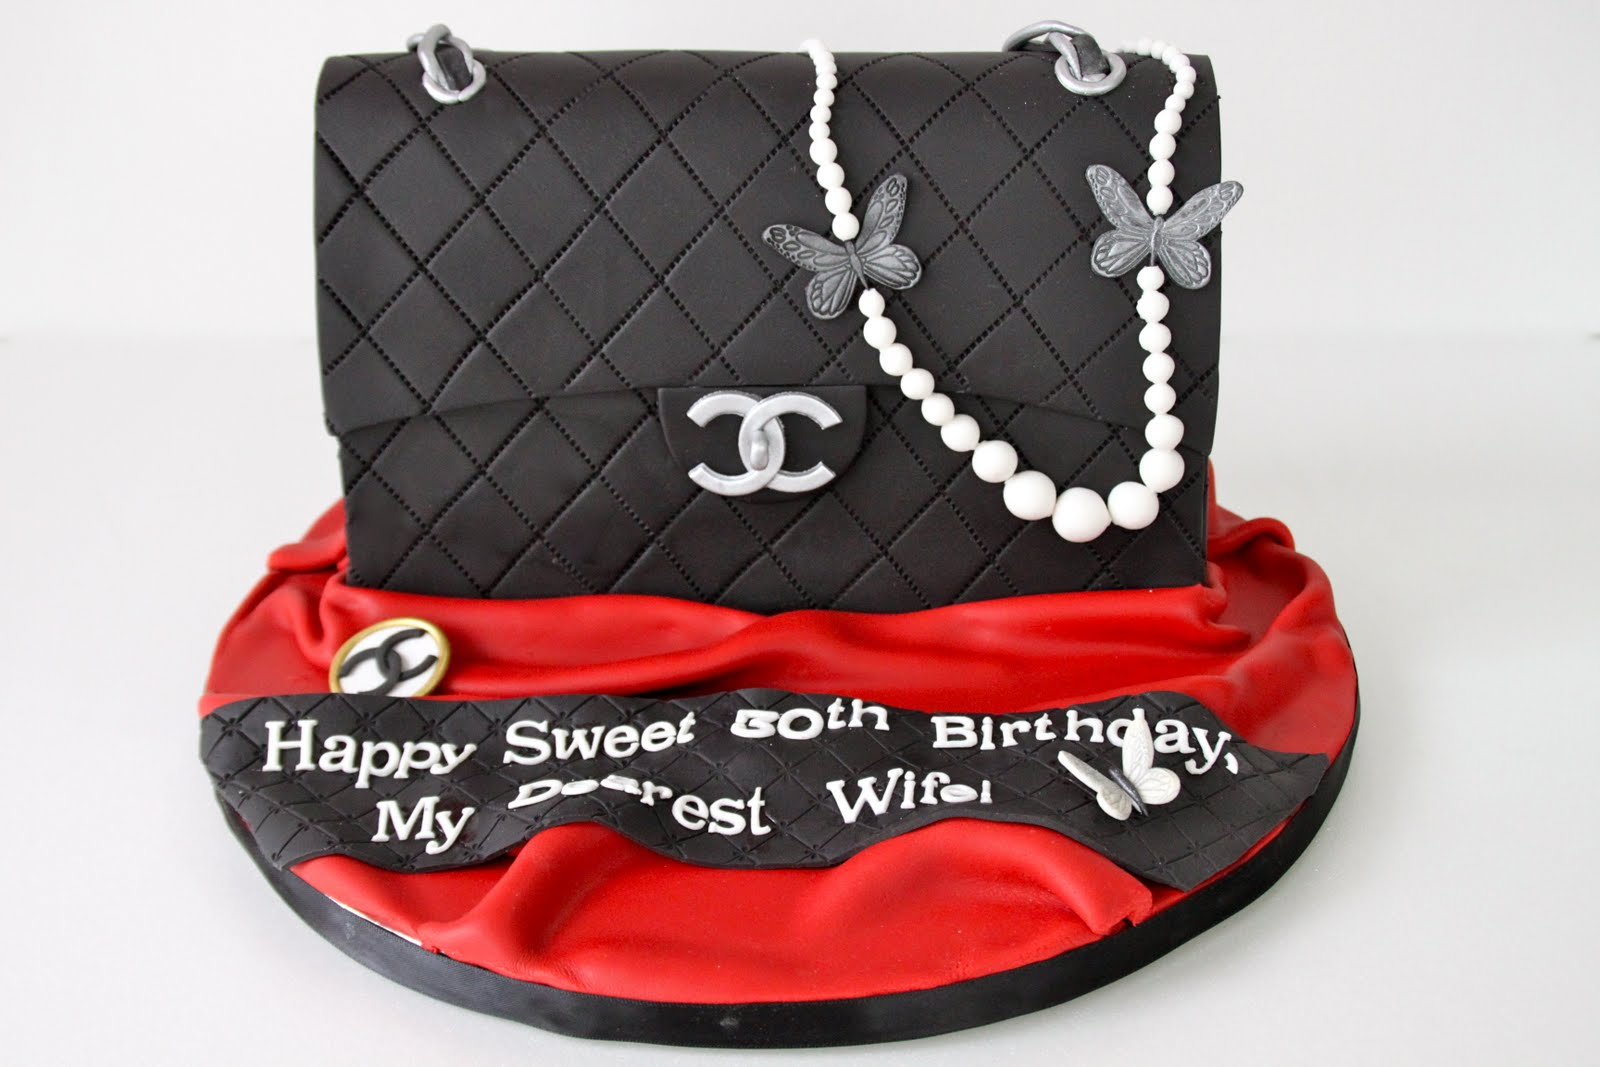 Chanel Bag Cake with Pearls c0ef2787c6f68